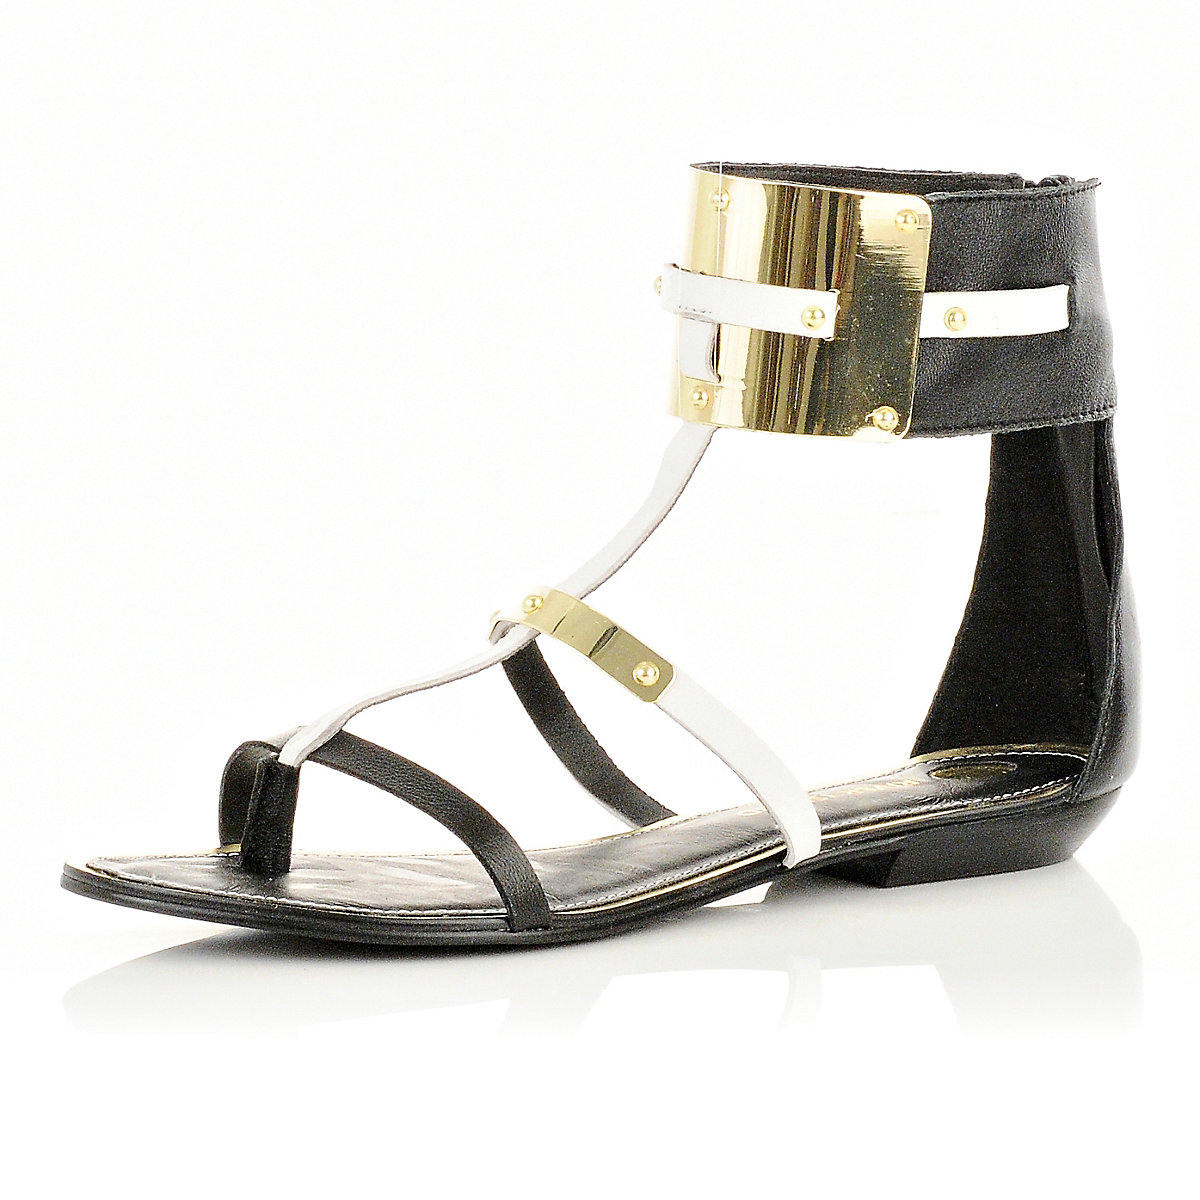 Black ankle cuff sandals